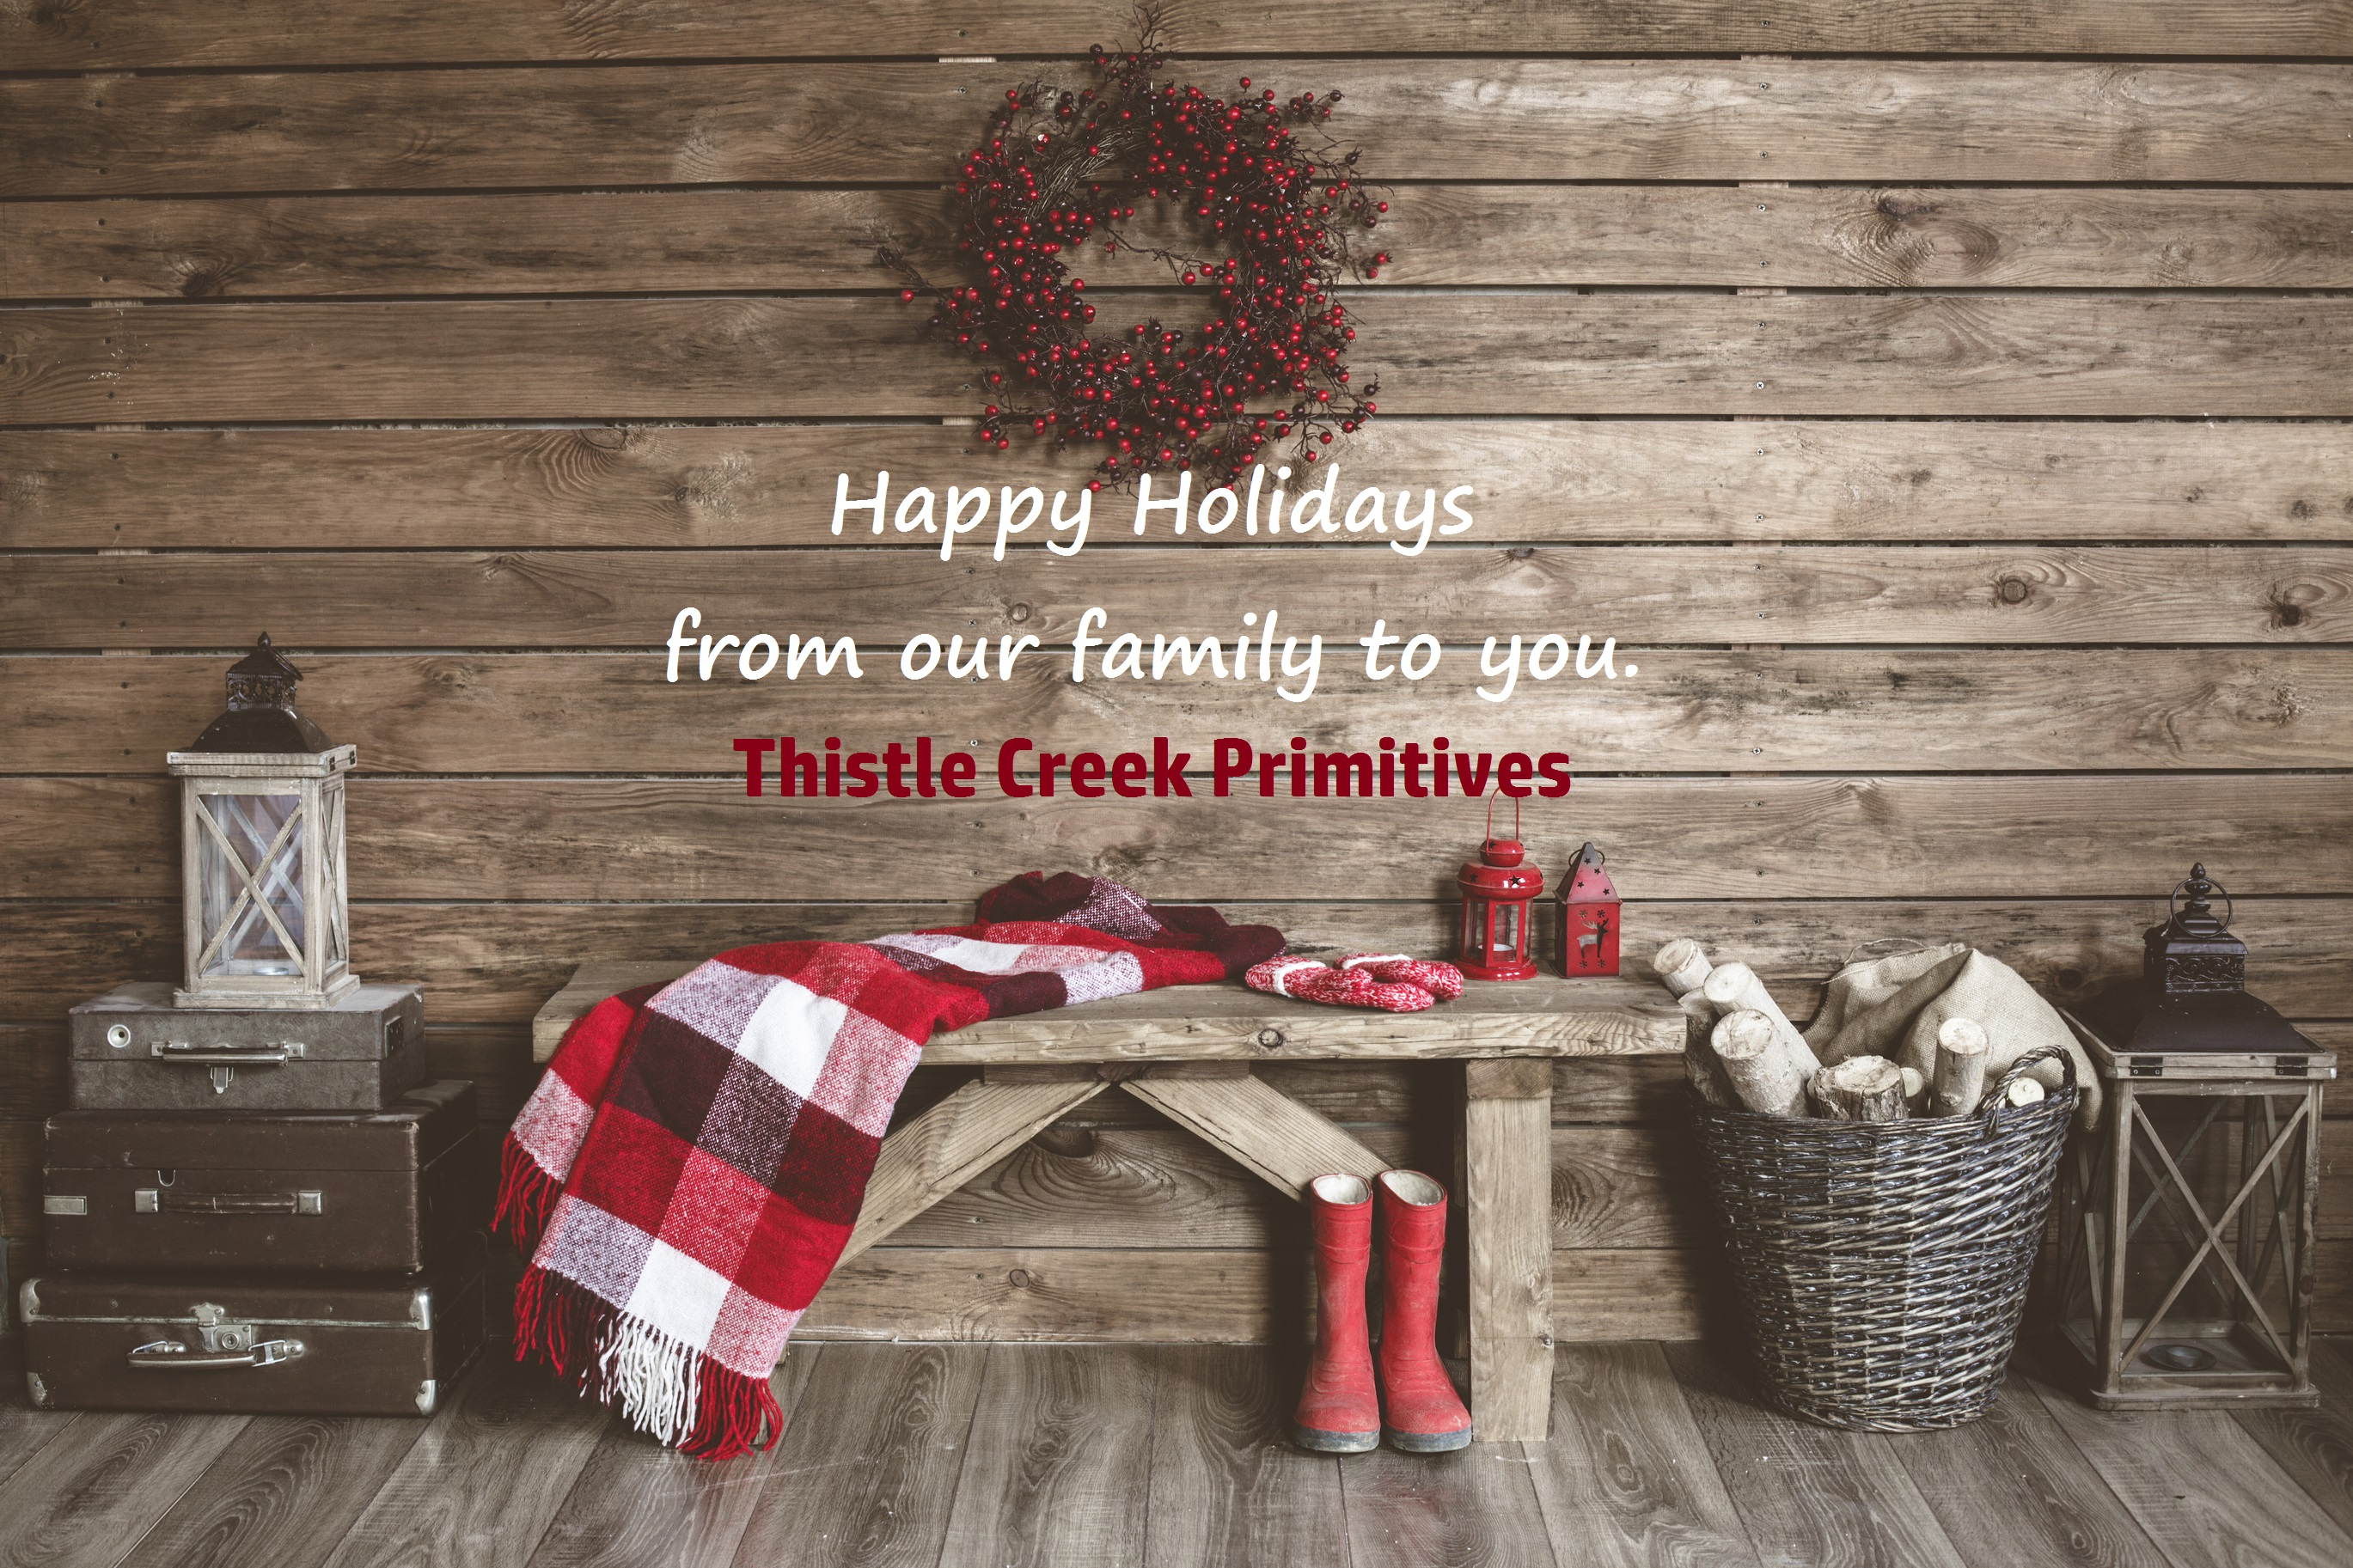 Thistle Creek Primitives - Country Home Decor and Gifts